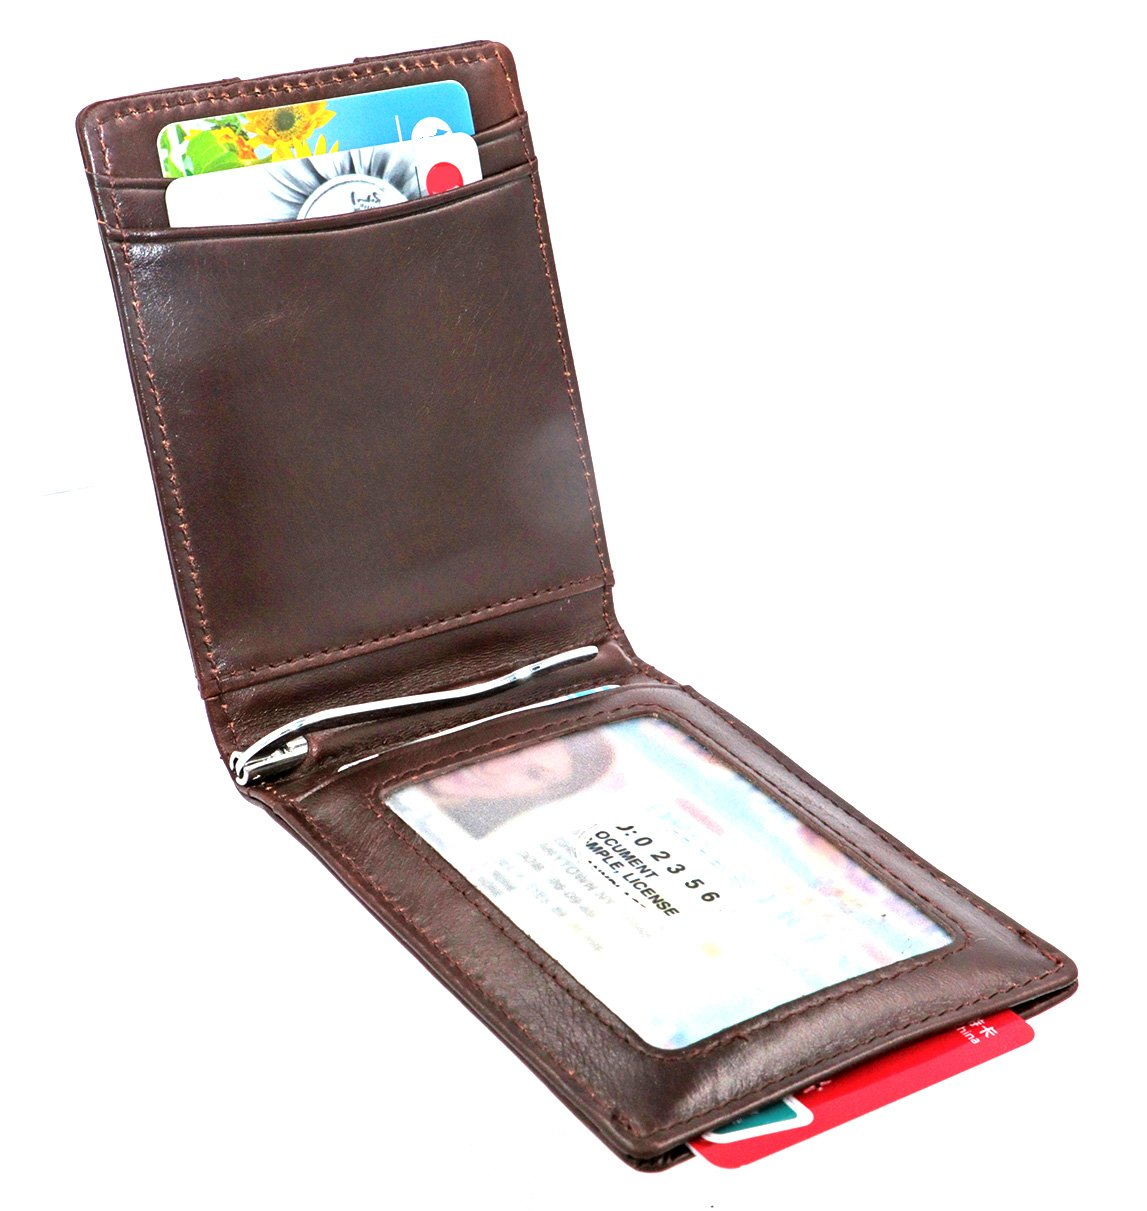 Slim men Card holder Wallets - Minimalist Bifold Front Pocket Genuine Leather Cash Money Clip RFID block (Brown)